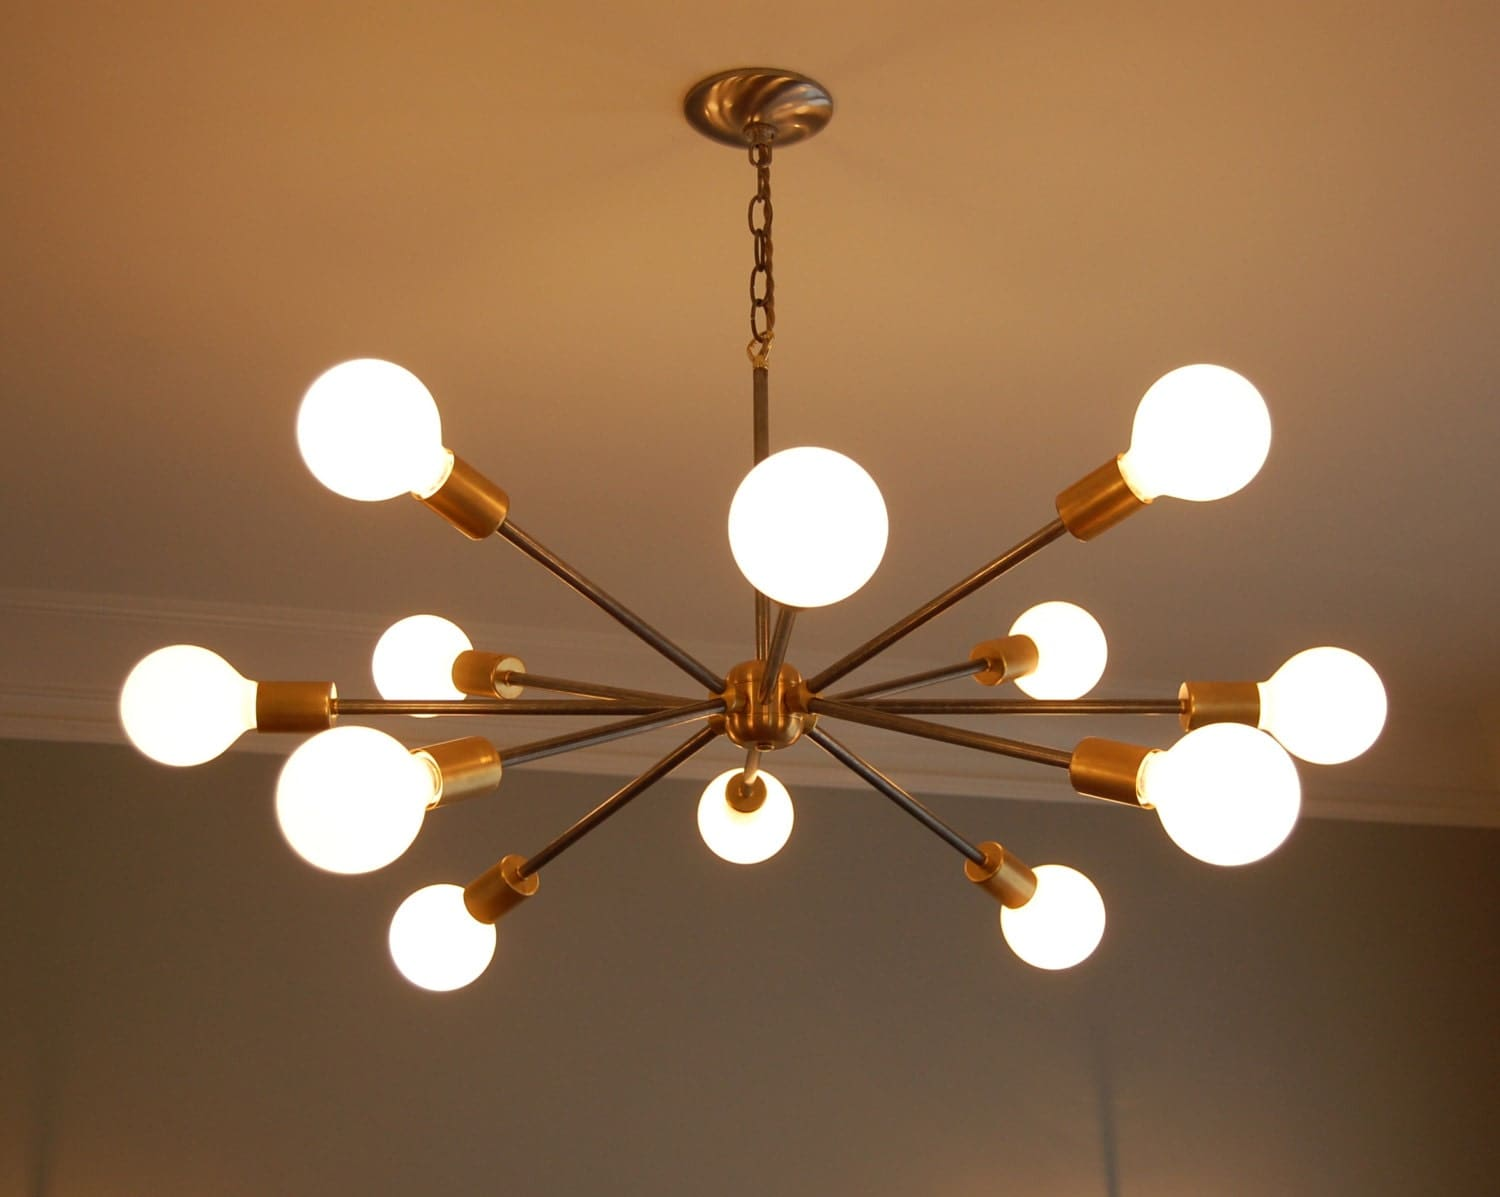 Midcentury sputnik inspired chandelier by southernlightstn on etsy 12 large frosted light bulb globes available separately look stunning in this chandelier aloadofball Images